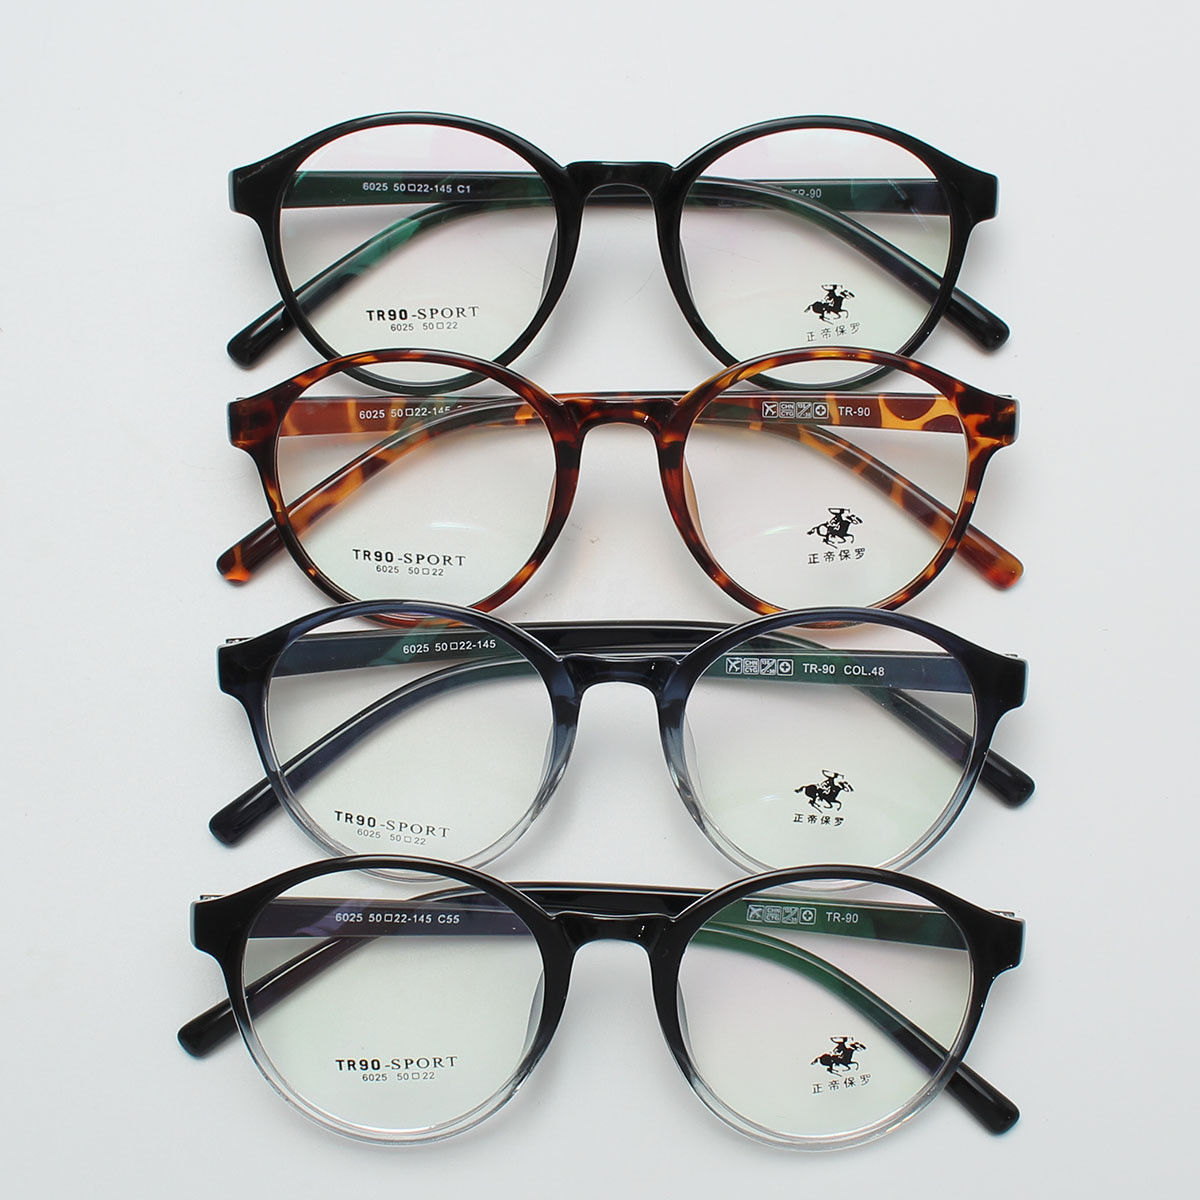 3172a0066d0  4.74 AUD - Stylish Men Women Retro Eyeglasses Frame Full-Rim Glasses  Eyewear Spectacles  ebay  Fashion